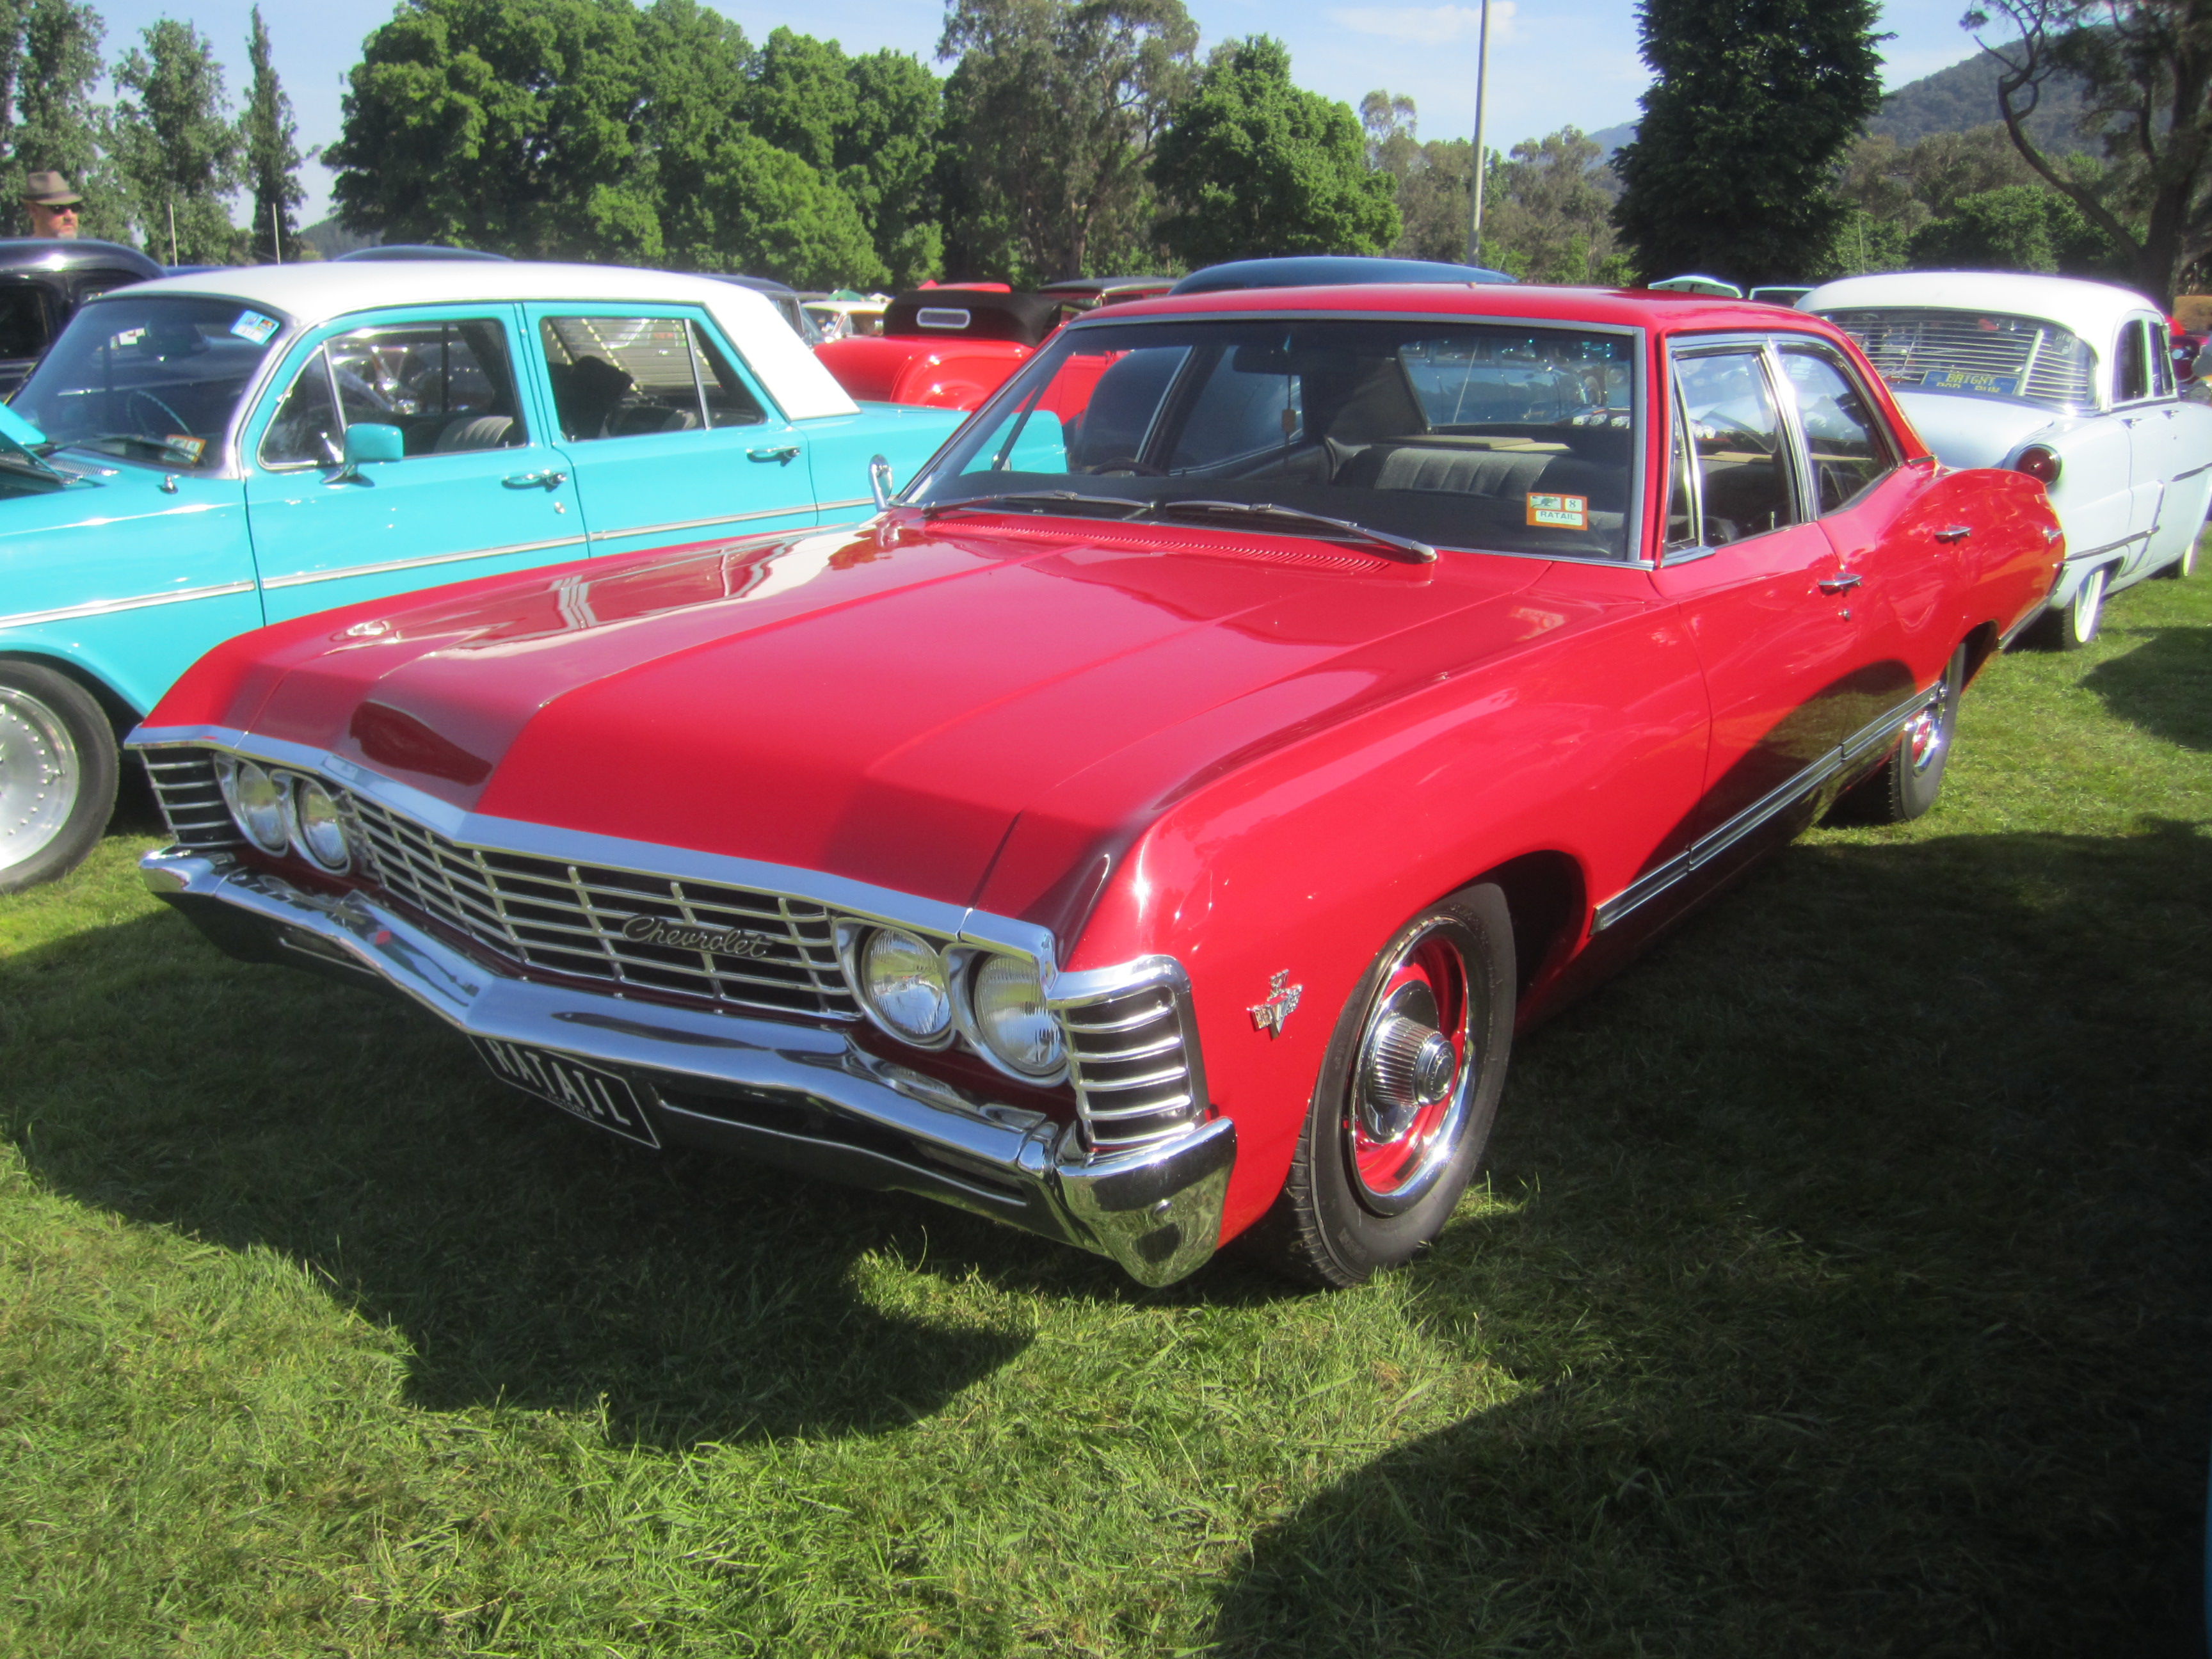 file 1967 chevrolet impala sedan flickr. Cars Review. Best American Auto & Cars Review